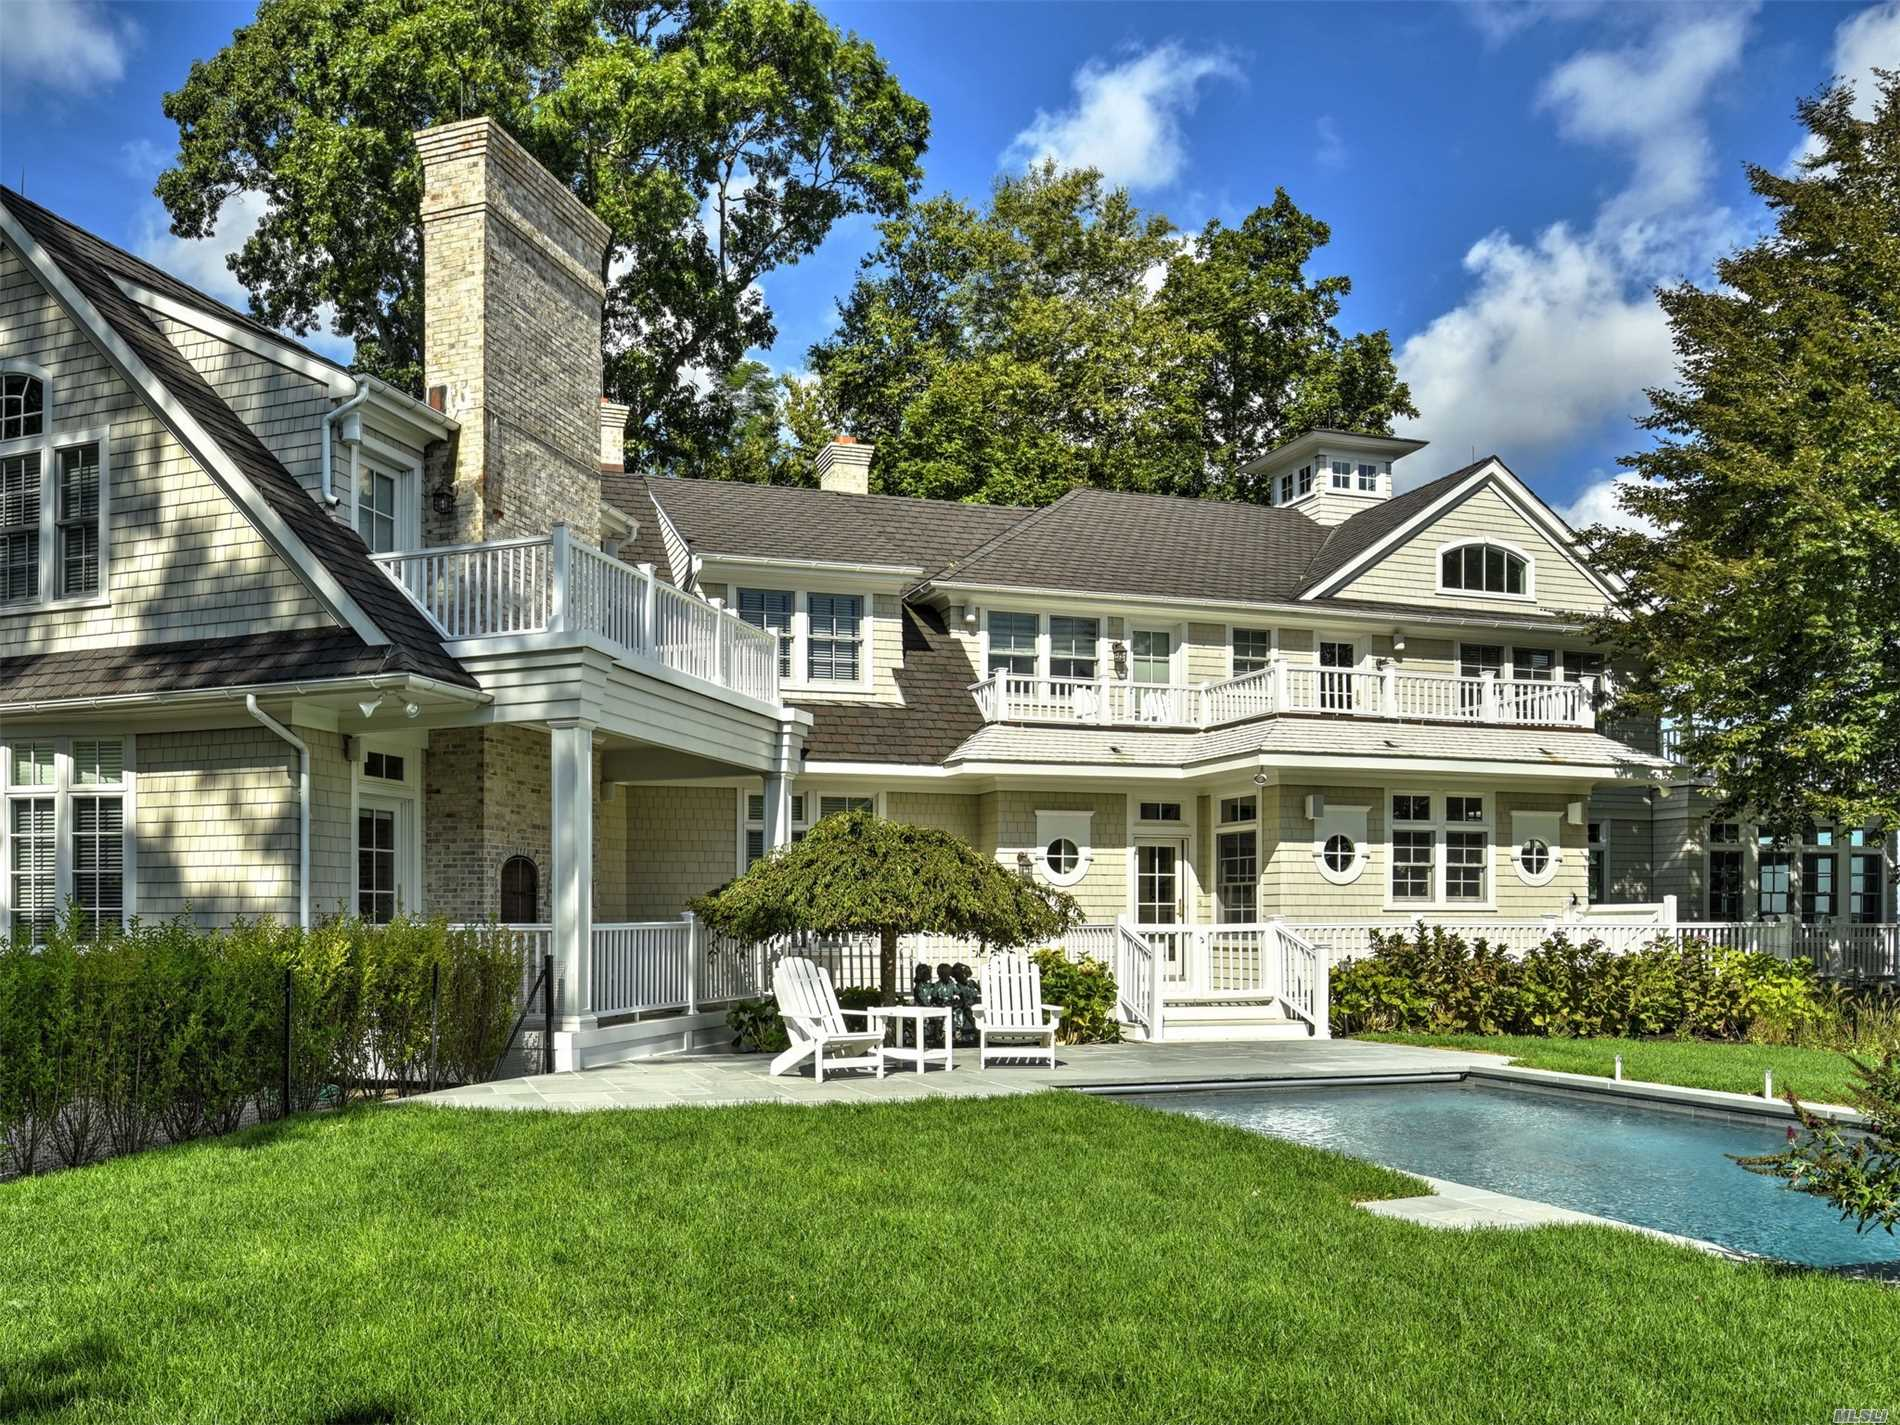 Enjoy The Tranquility Of Shelter Island. This 9, 230 Sq. Ft. Home Located On 1.7 Acres Was Rebuilt In 2010. Features Include Scenic Views Of Dering Harbor, 600 Ft Of Private Beach, A 168 Ft Deep Water Dock, A Deeded Mooring, Five Fireplaces, A Four-Car Garage, Home Theater Room, Library, Outside Pizza Oven, Wine Cellar And A Pool.